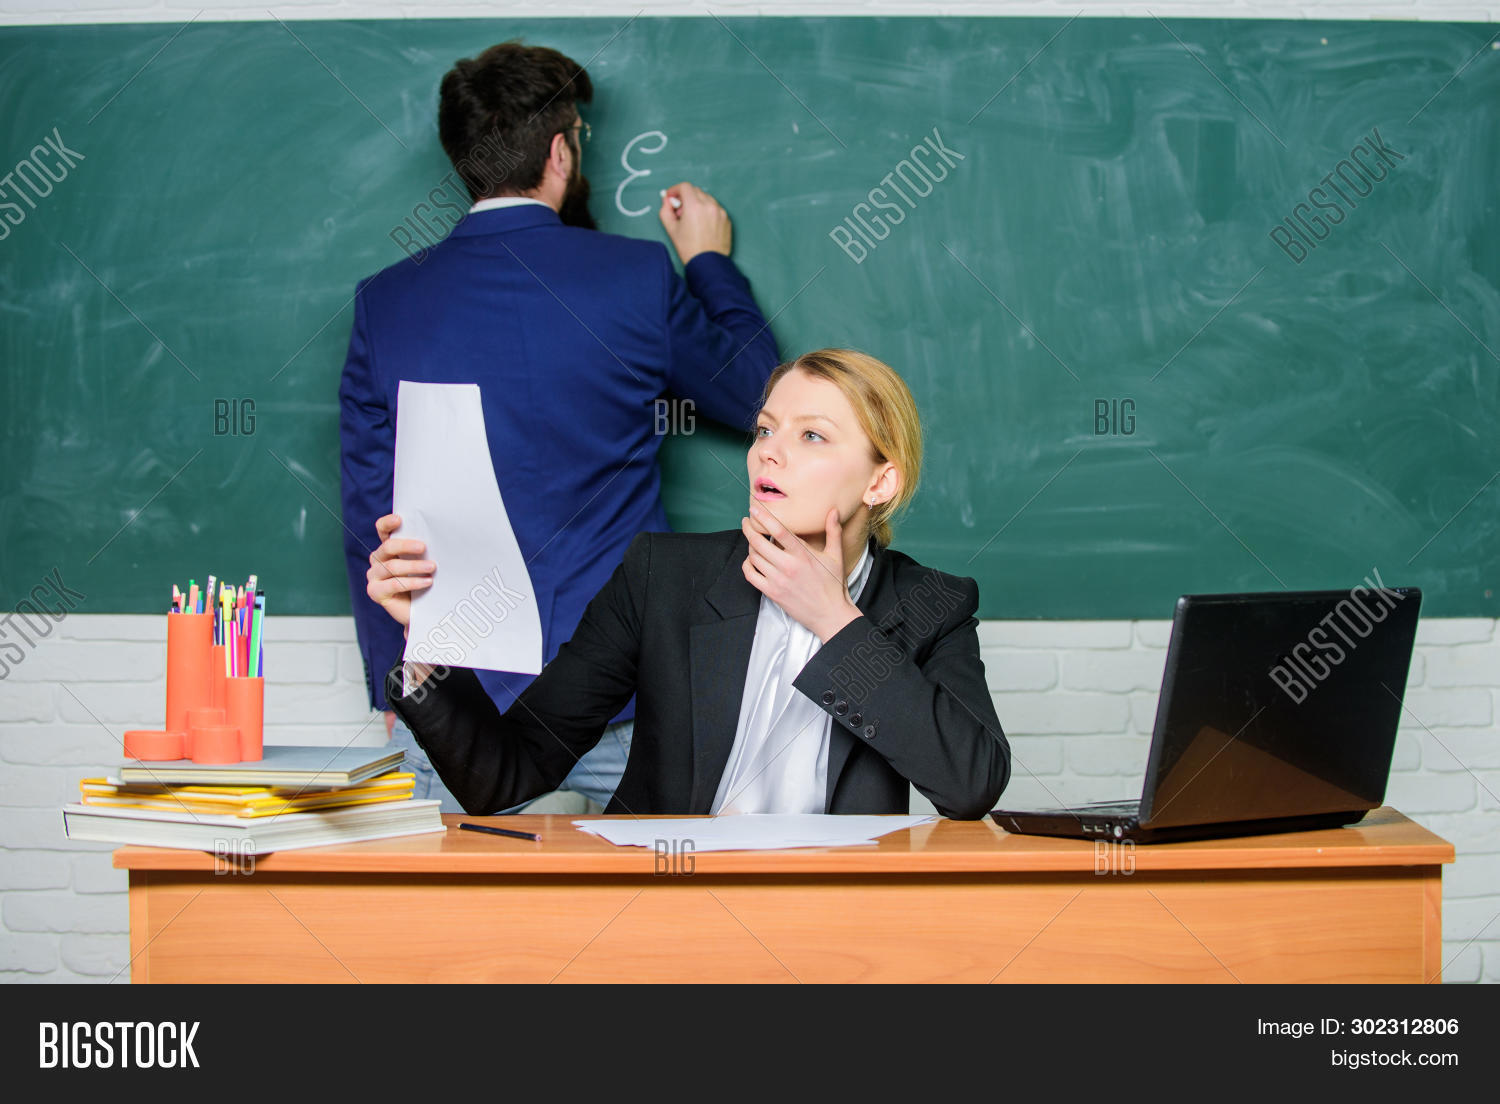 assistant,background,bearded,blackboard,caucasian,chalkboard,check,classroom,colleagues,computer,concept,documents,down,education,educational,educator,examination,formal,handsome,homework,knowledge,laptop,lesson,man,notebook,pairs,prepare,program,report,school,september,study,subject,supervisor,task,teach,teacher,test,trainee,woman,working,write,your